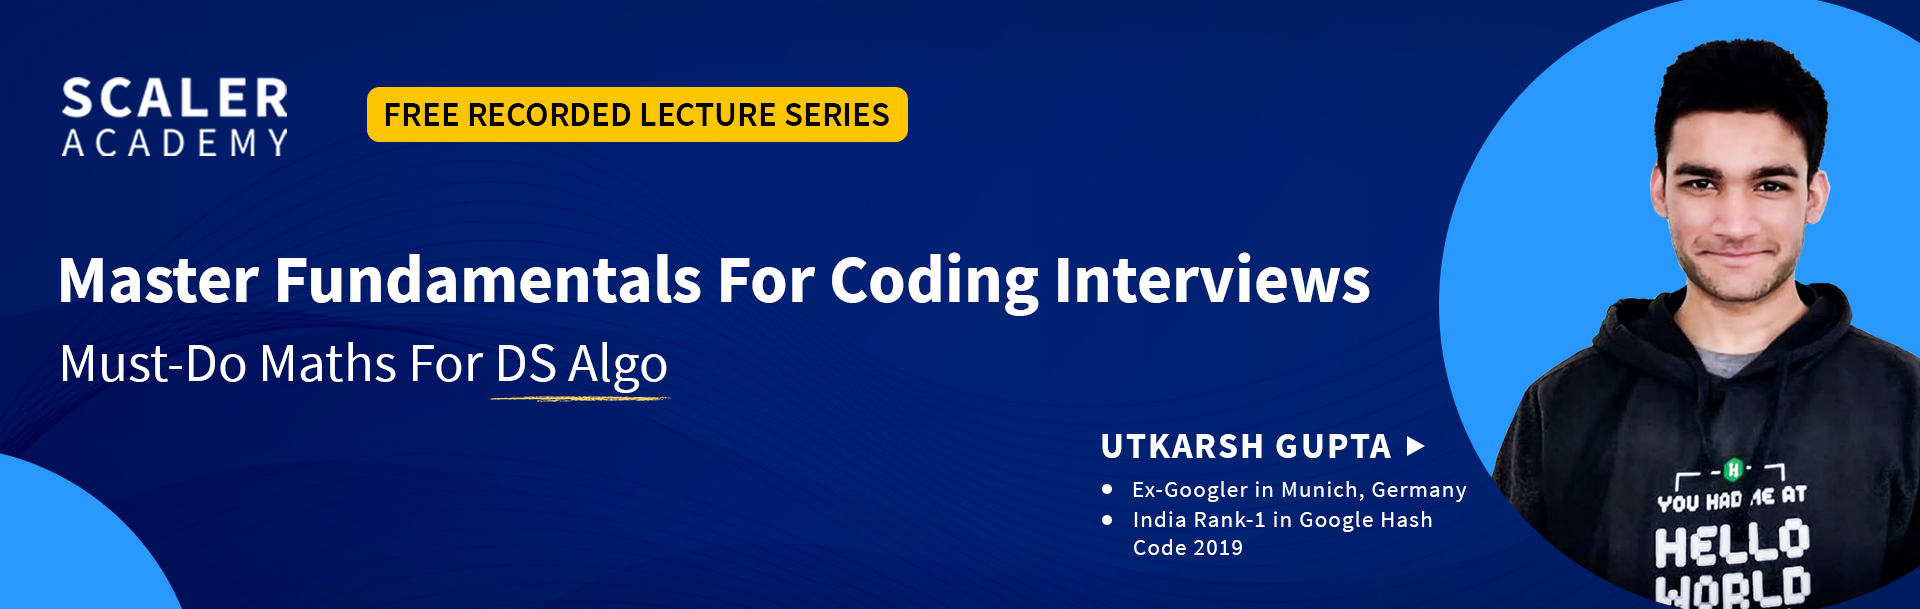 Master Fundamentals For Coding Interviews: Must-Do Mathematics For DS Algo [Recorded Lecture Series]